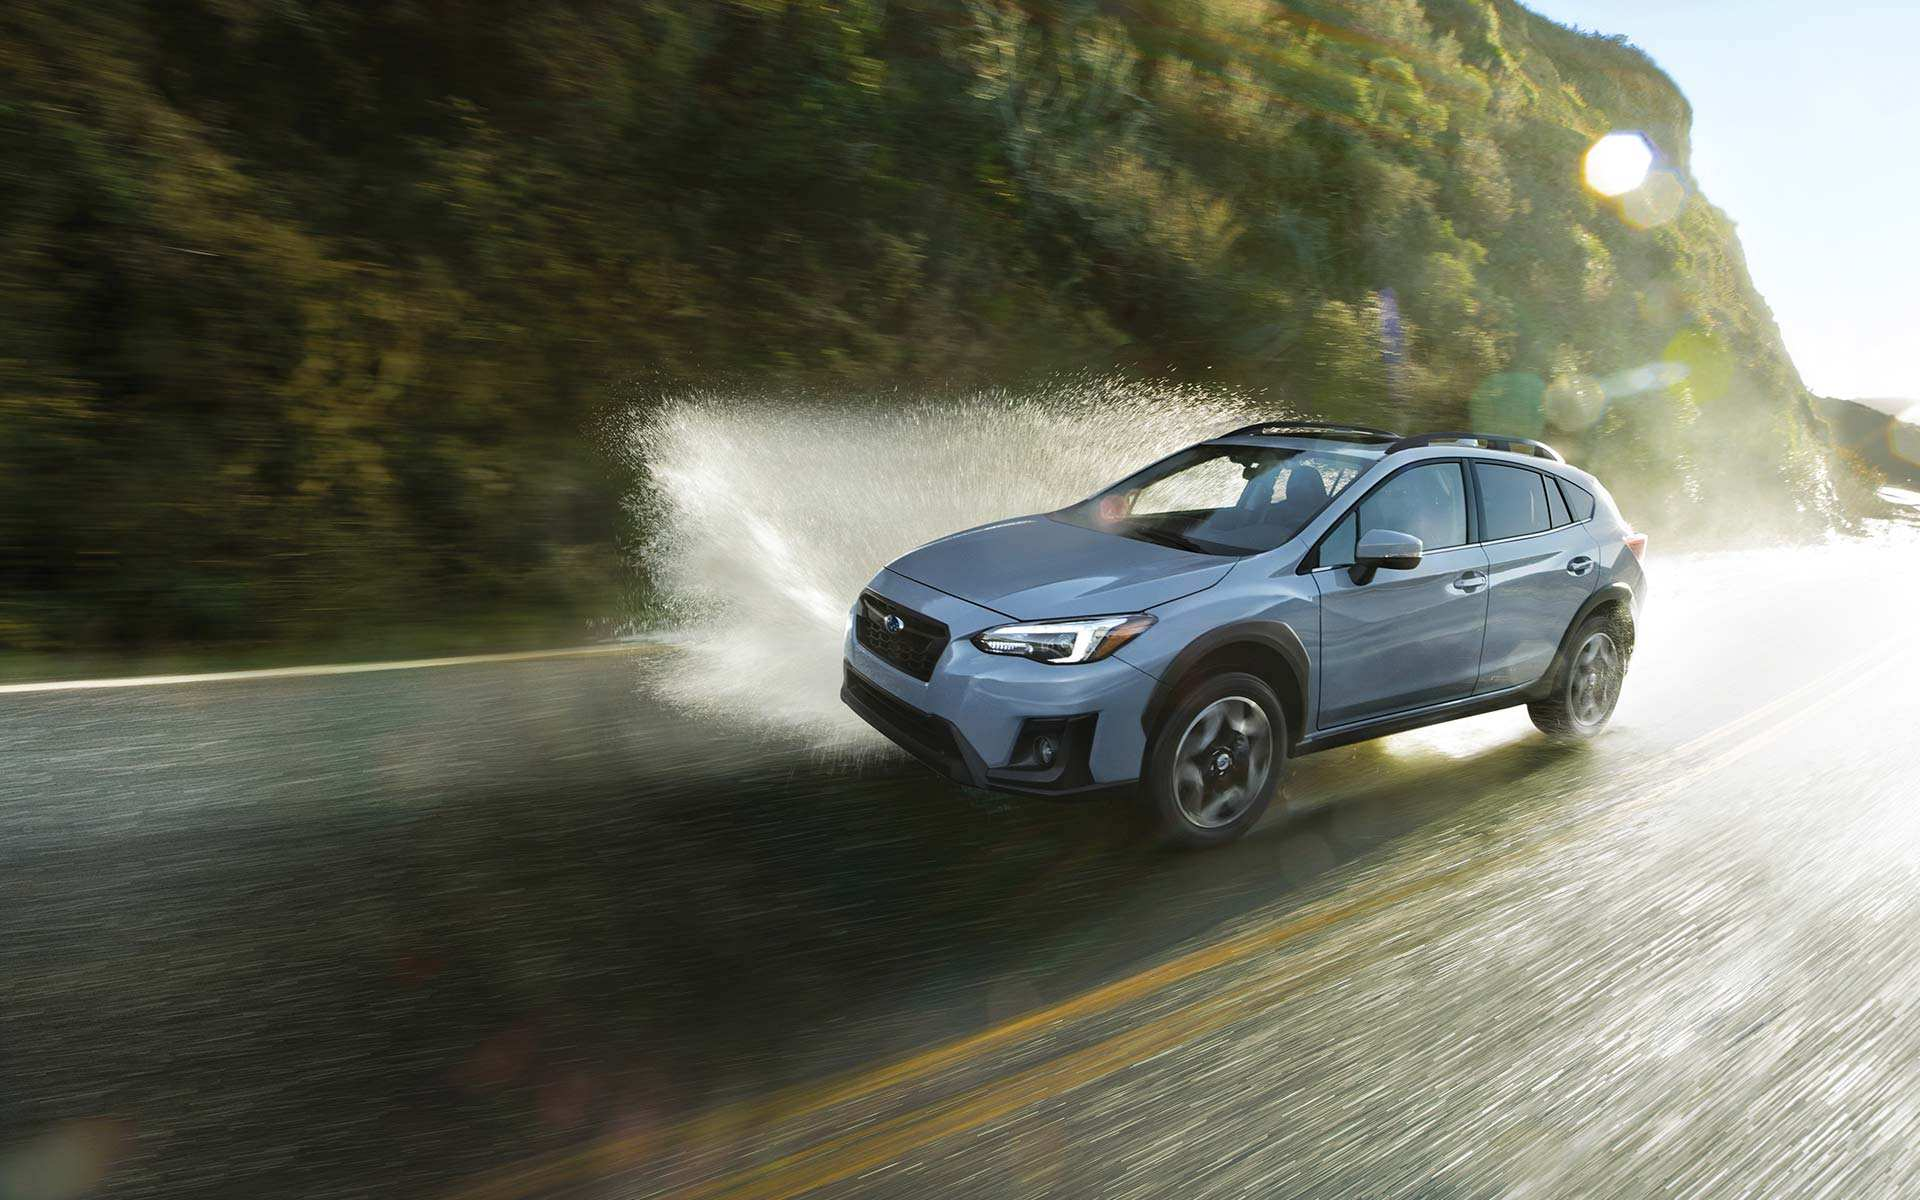 37 Best Review 2019 Subaru Crosstrek Khaki Price with 2019 Subaru Crosstrek Khaki